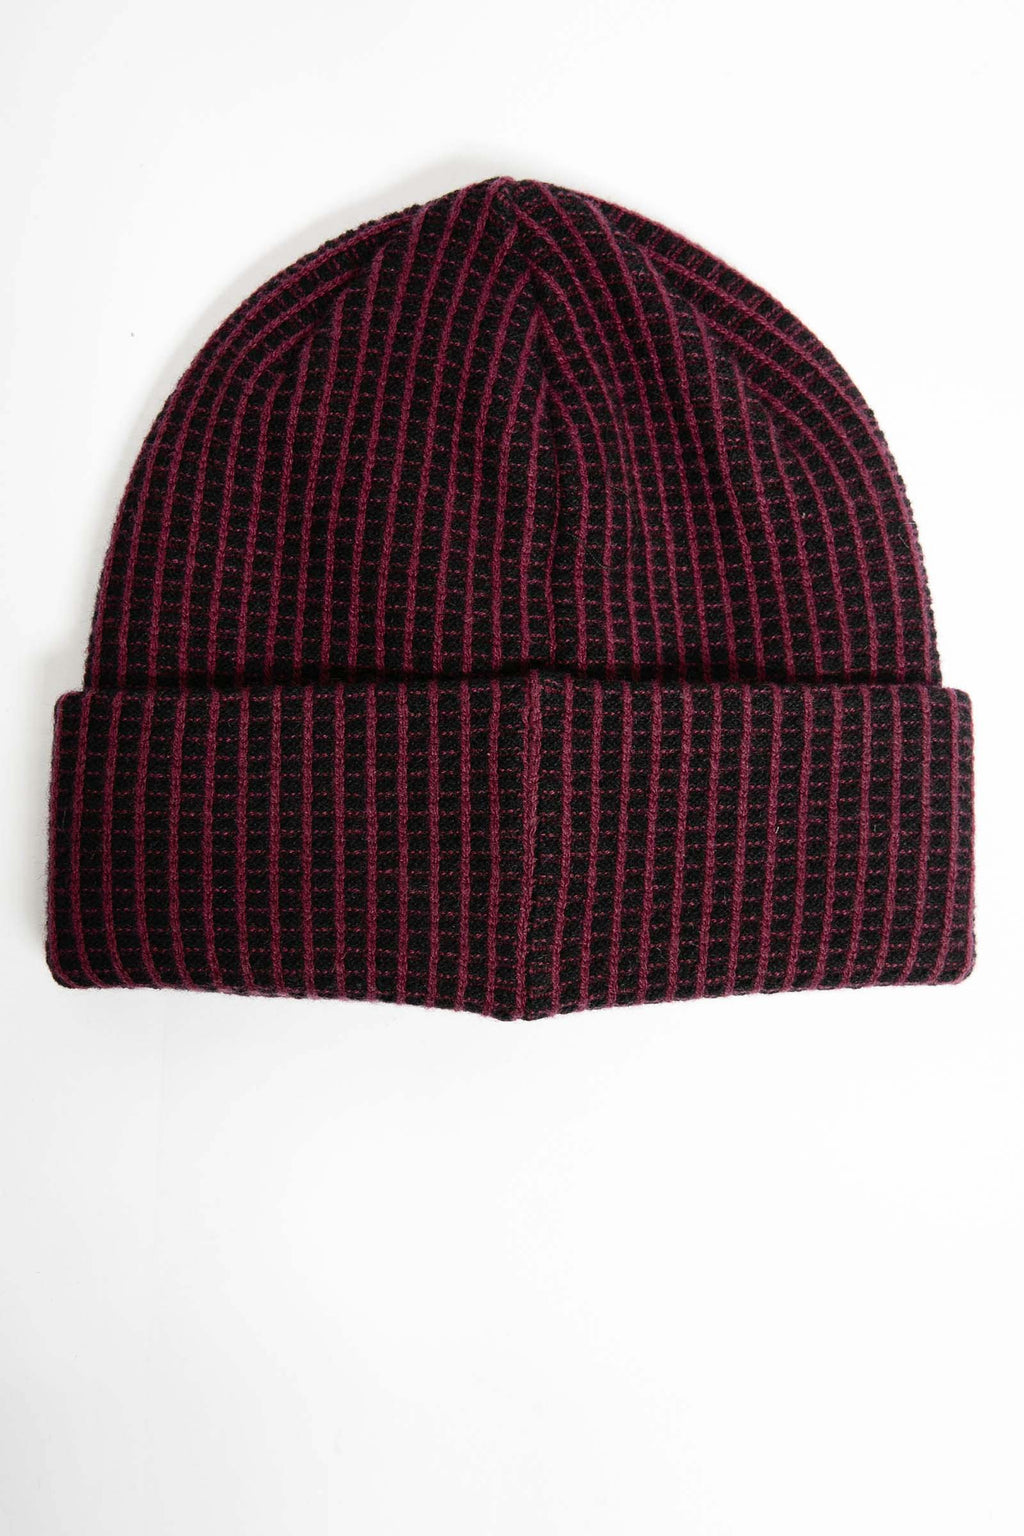 I.S.M. 'Pearl Lager' Burgundy Cashmere Beanie